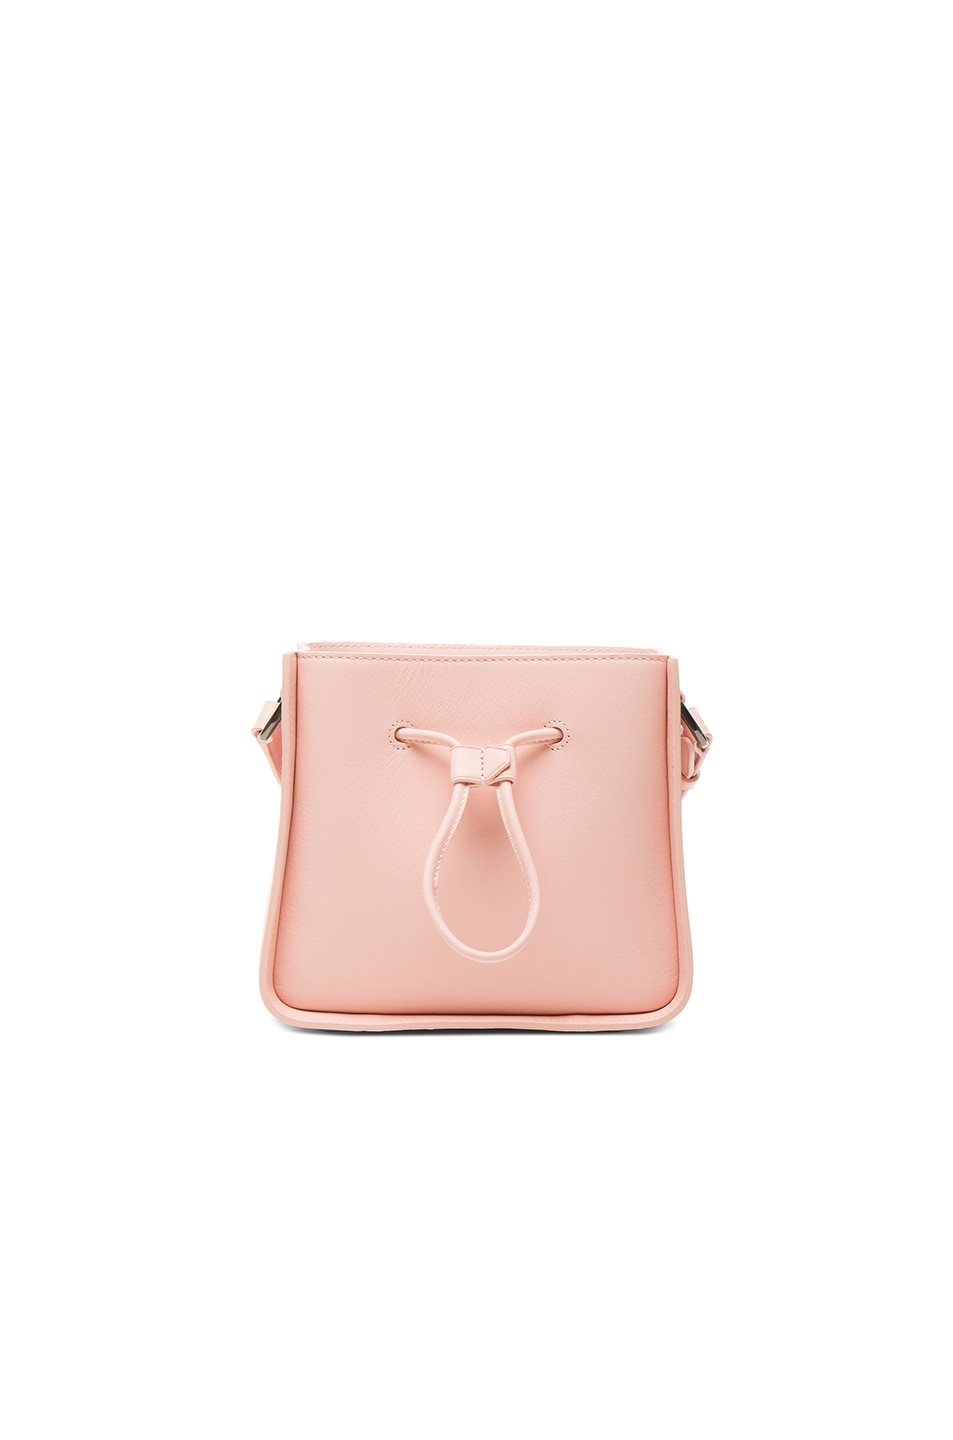 Image 1 of 3.1 phillip lim Soleil Mini Bucket Bag in Light Pink